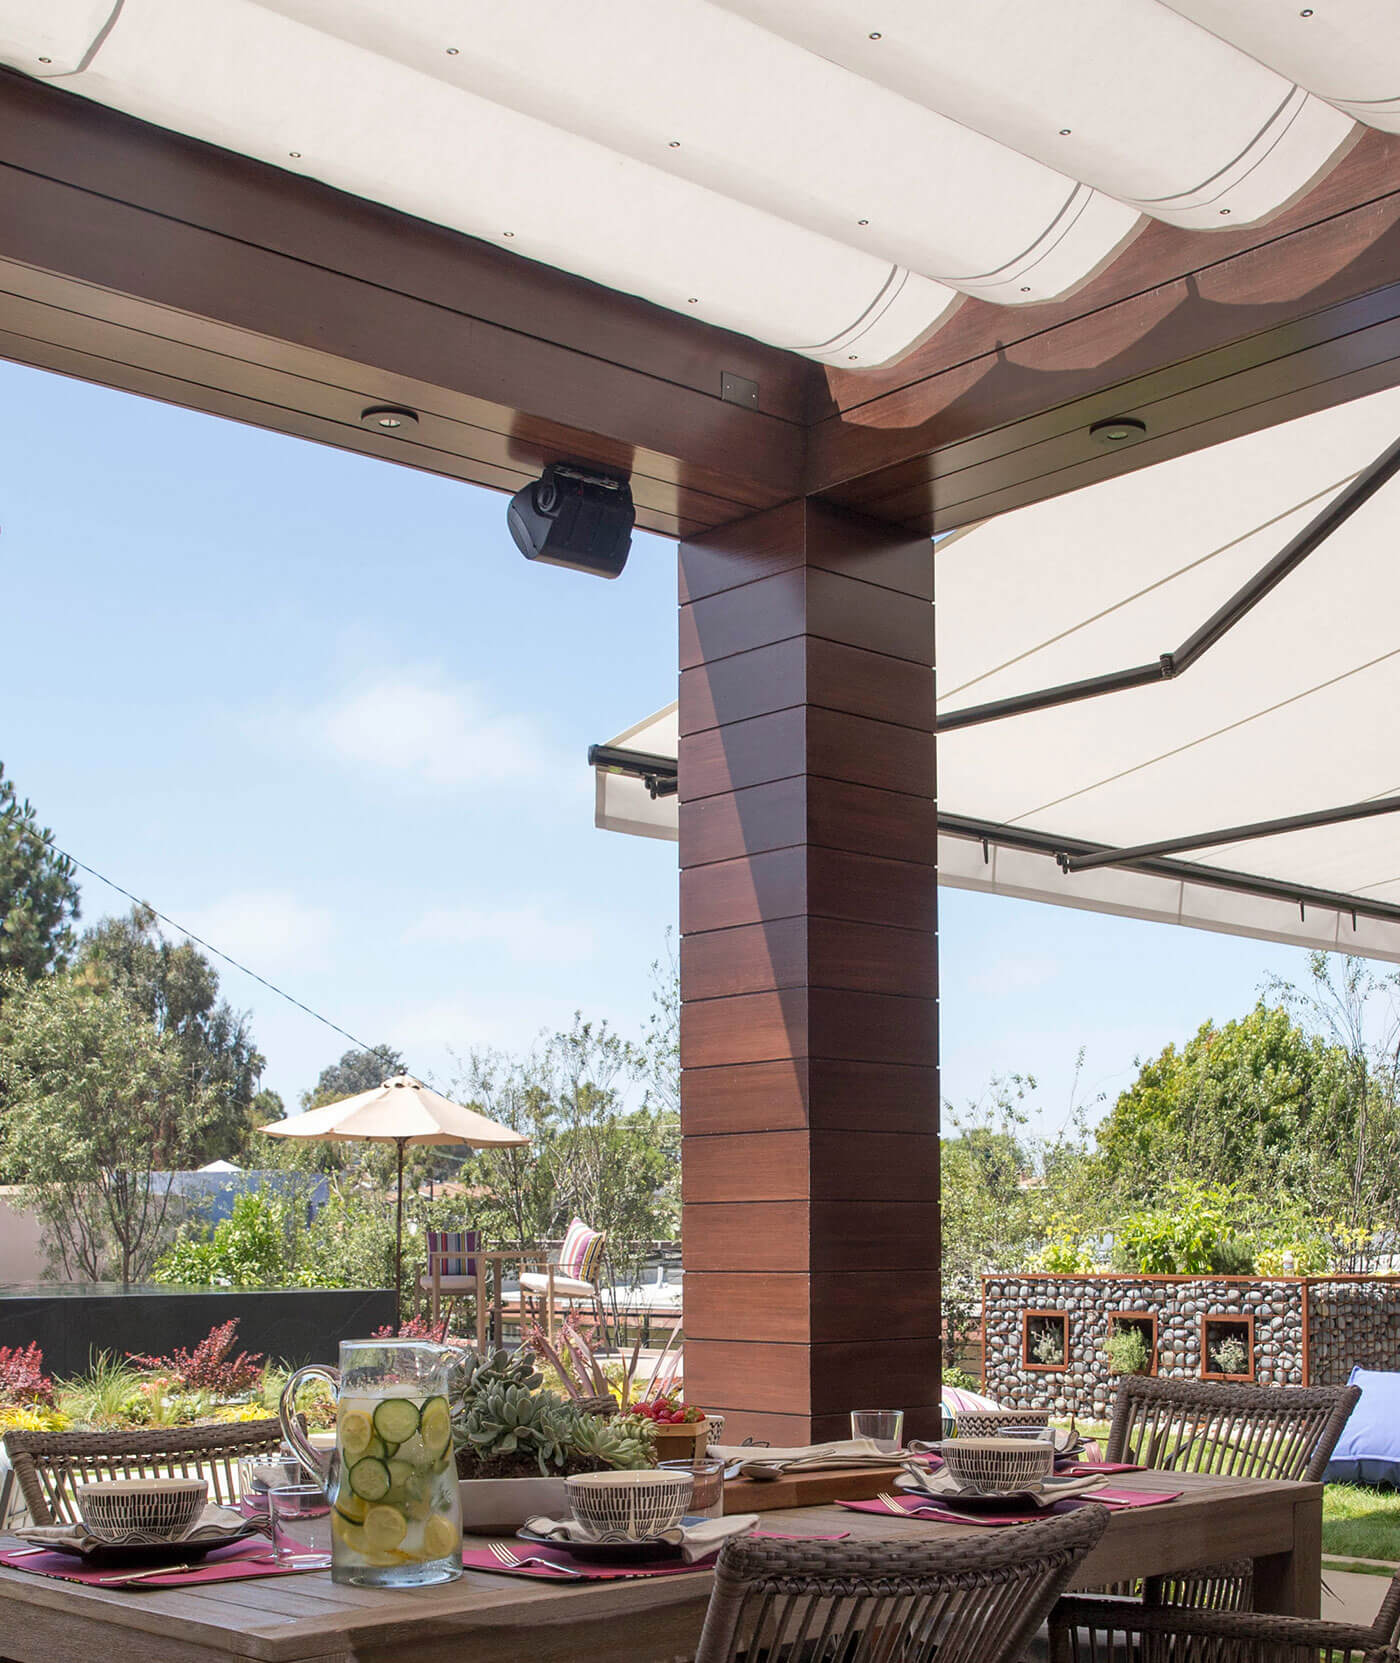 A patio is shaded by a pergola and retractable awning made with Sunbrella fabrics